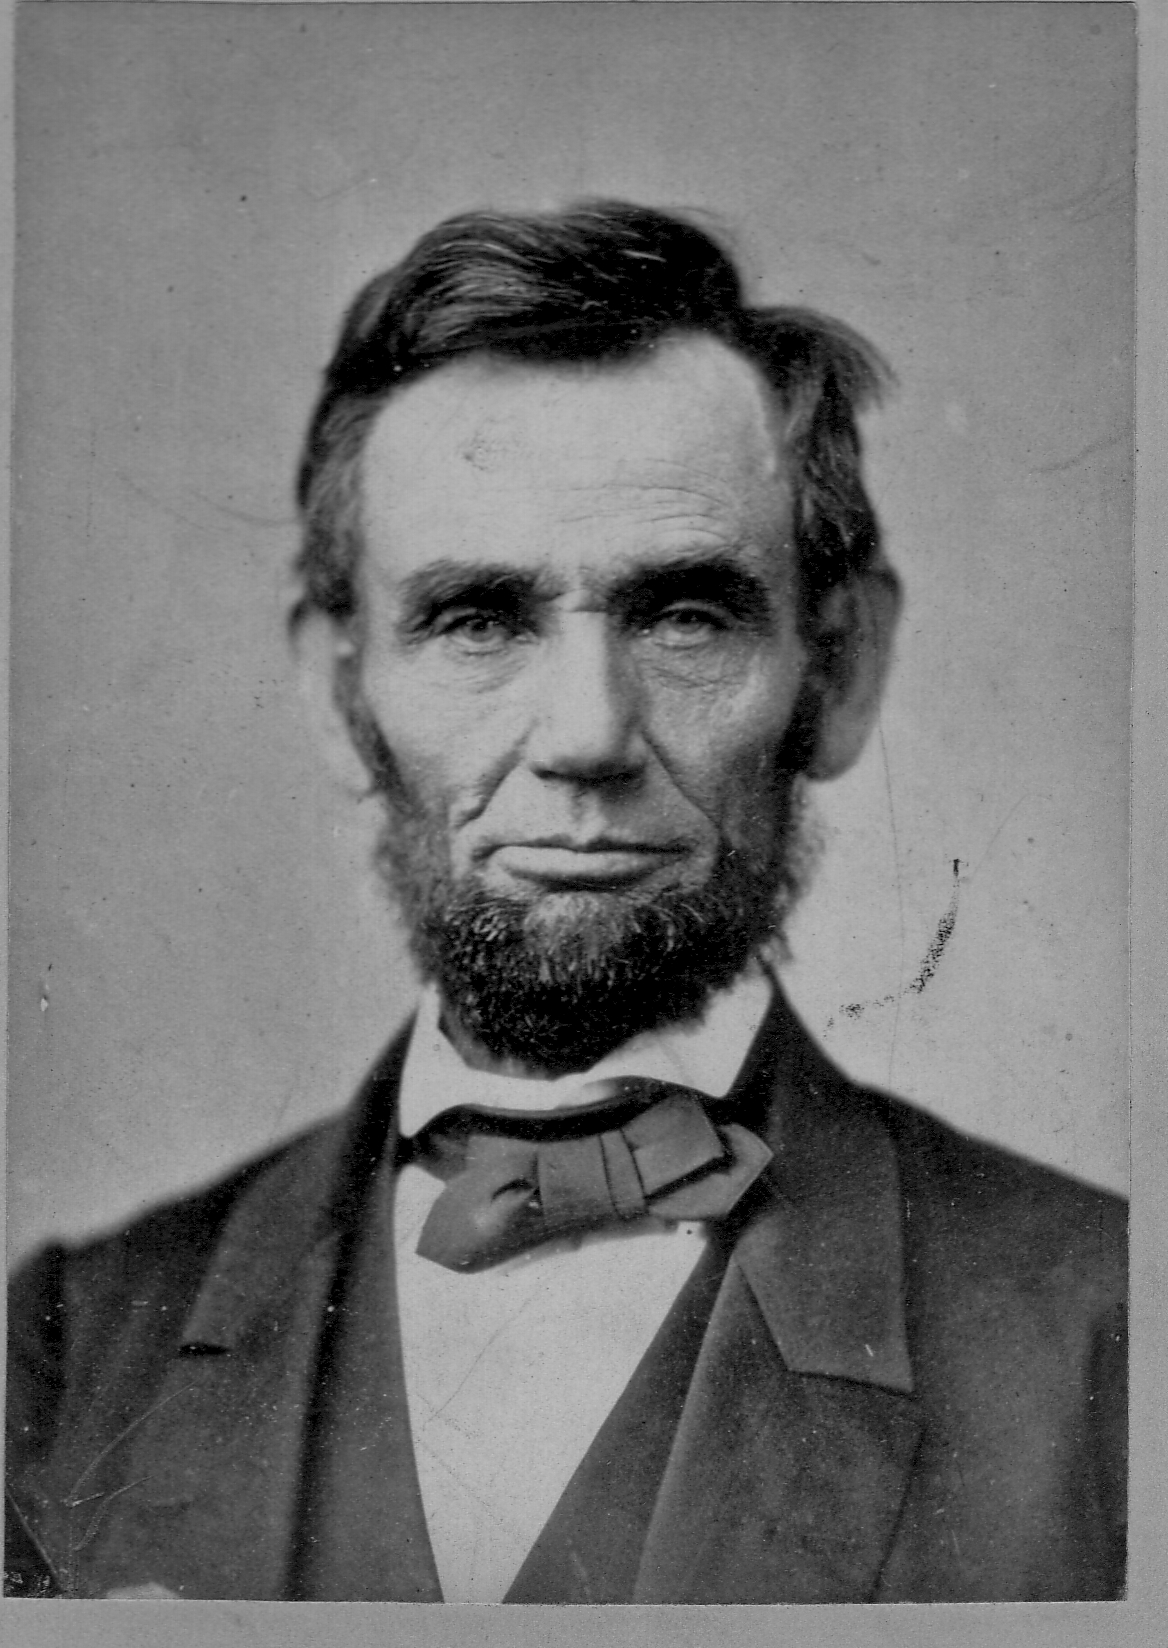 head and shoulders portrait of Abraham Lincoln. He wears a dark suit jacket, white button-down shirt and dark bowtie.